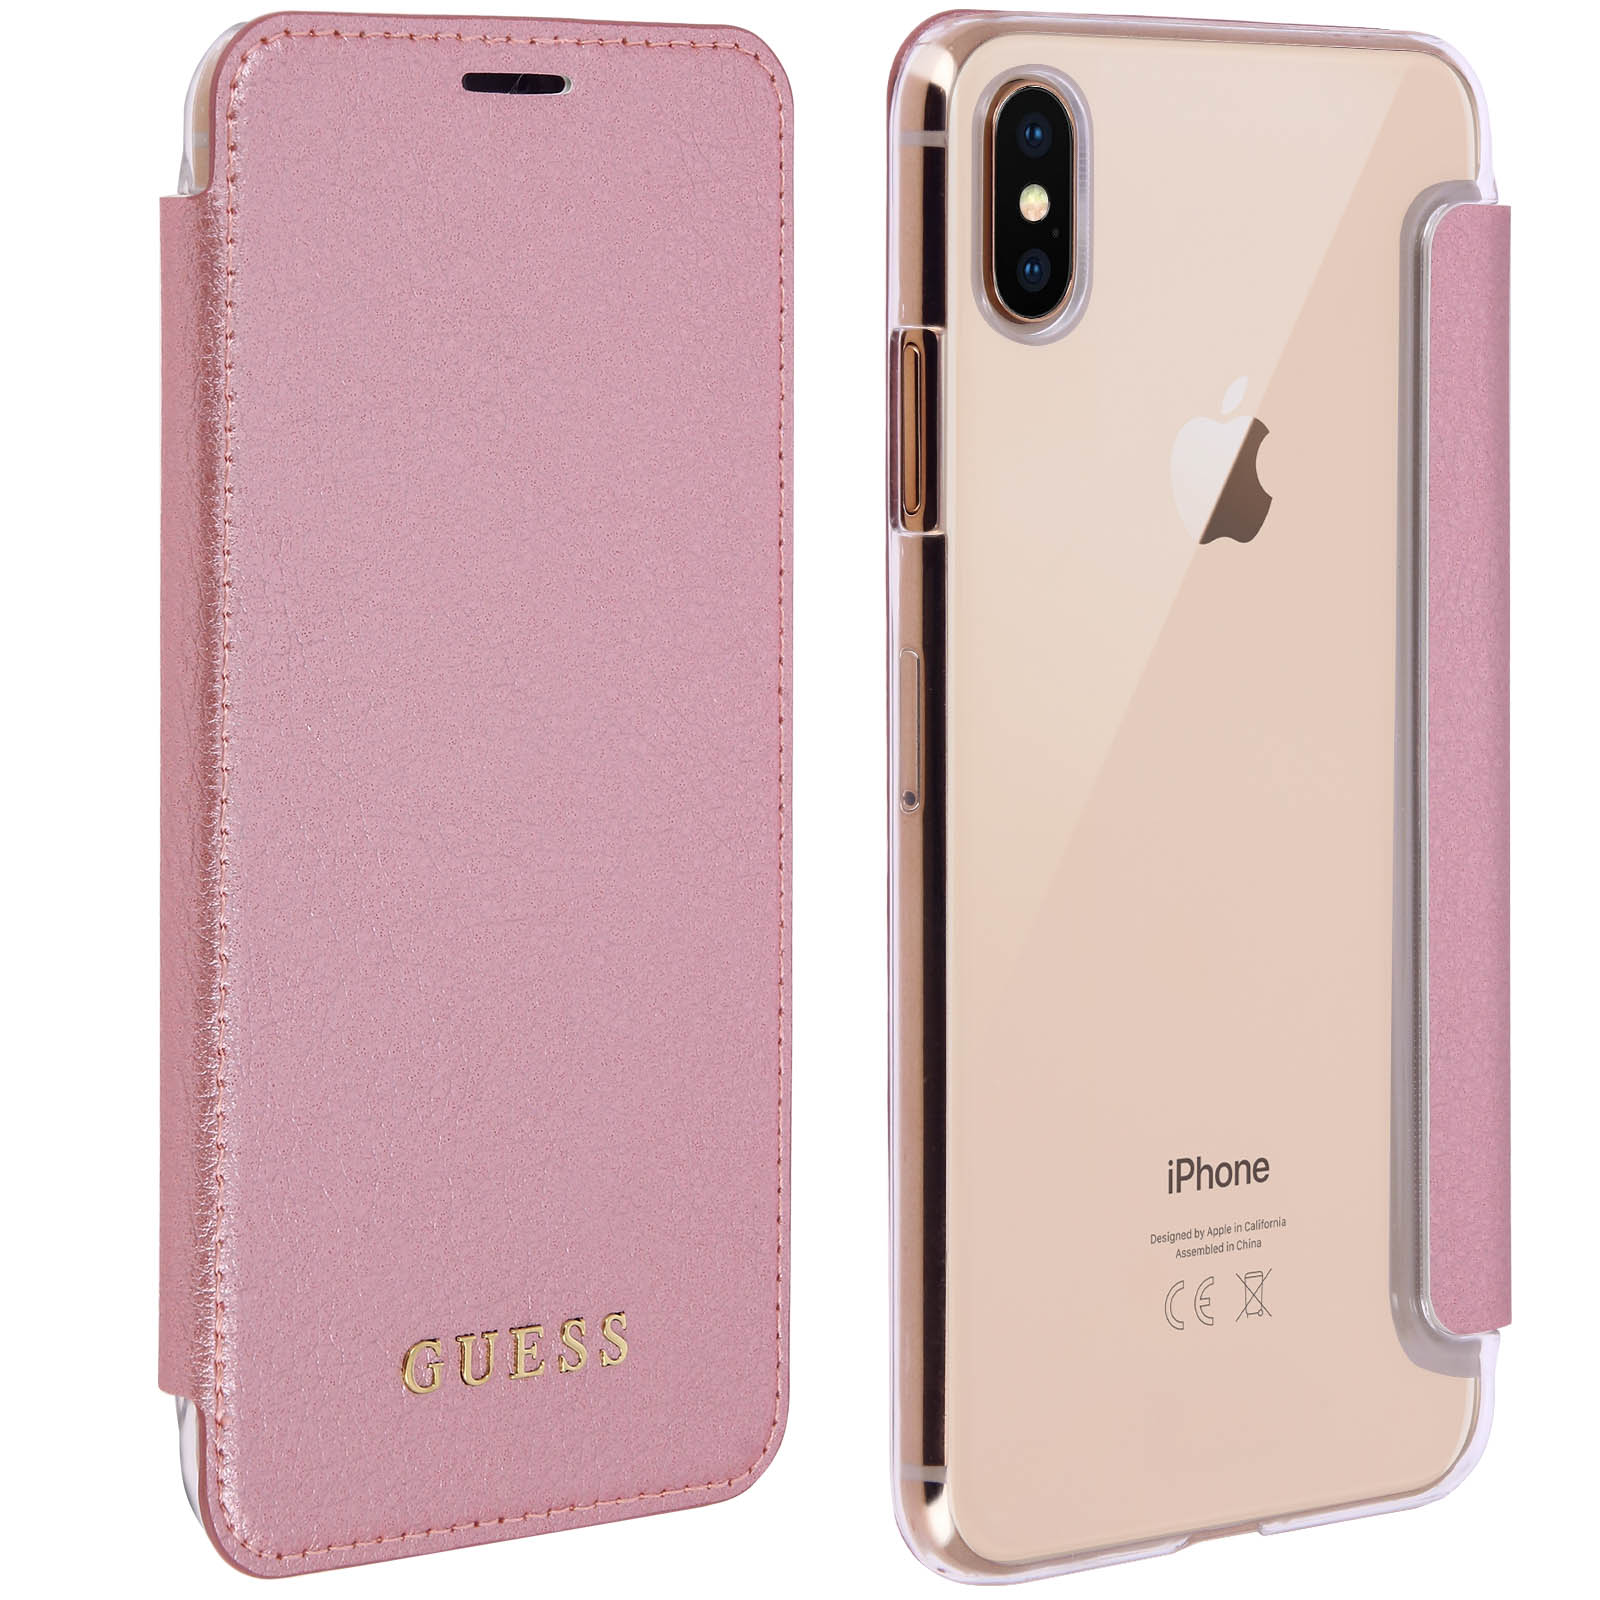 Pouzdro / kryt pro iPhone XS MAX - Guess, Iridescent Book RoseGold